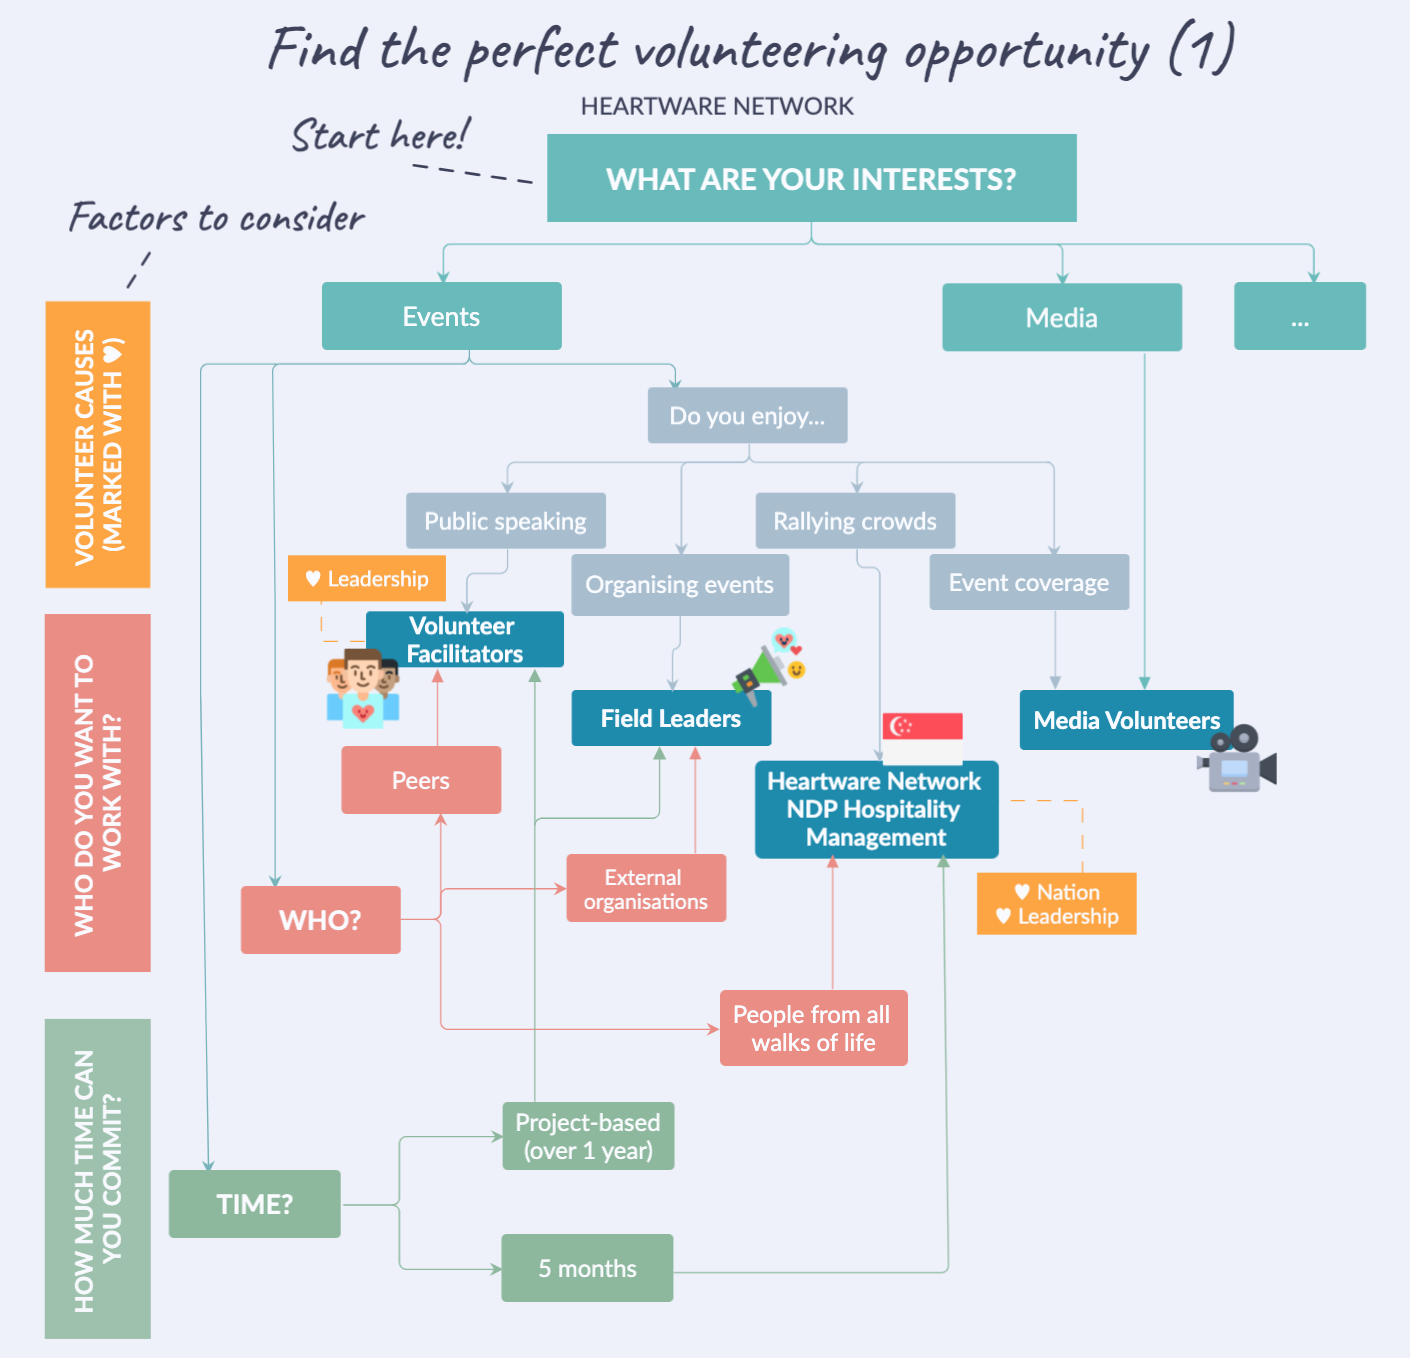 4 Simple Steps To Finding the Perfect Volunteering Opportunity